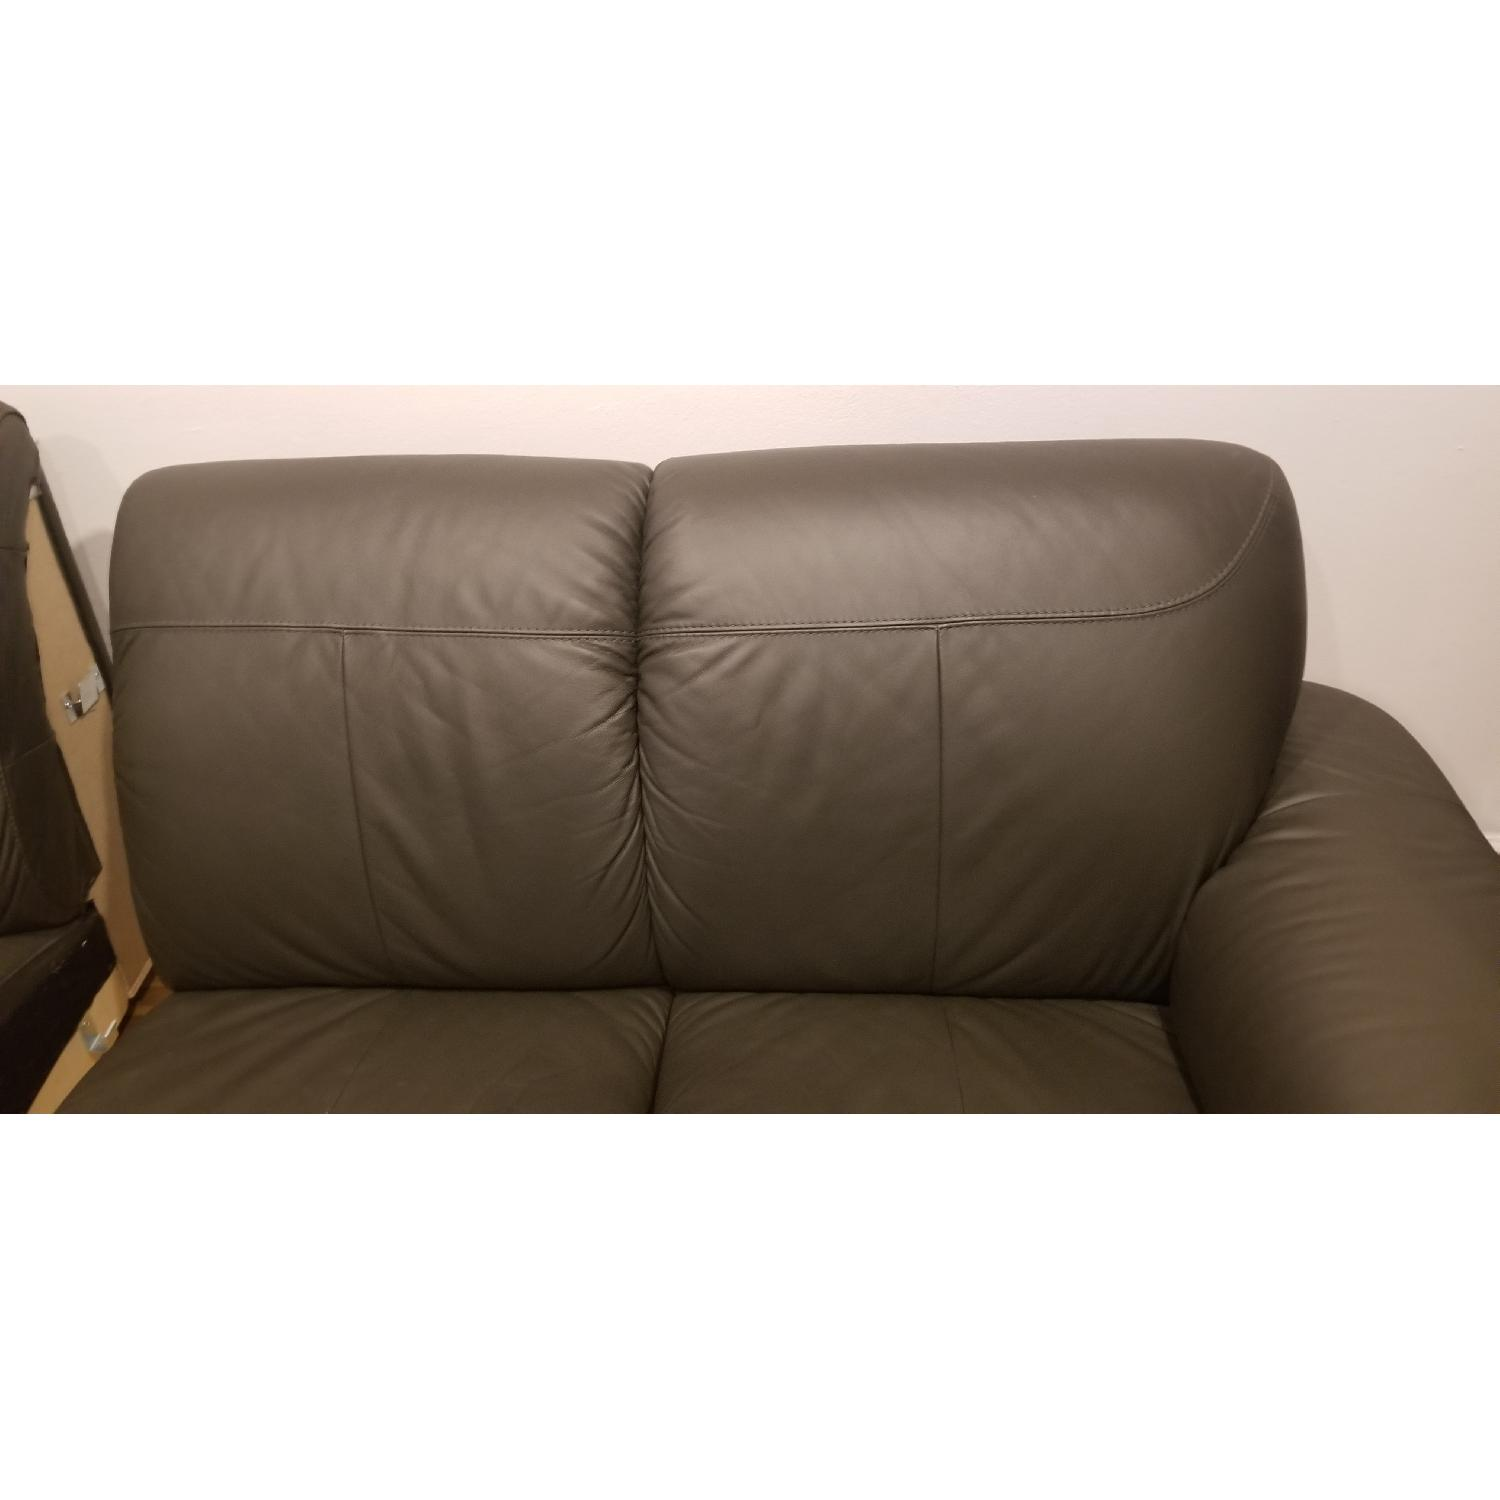 Ikea Timsfors Faux Leather Sectional Sofa - image-16